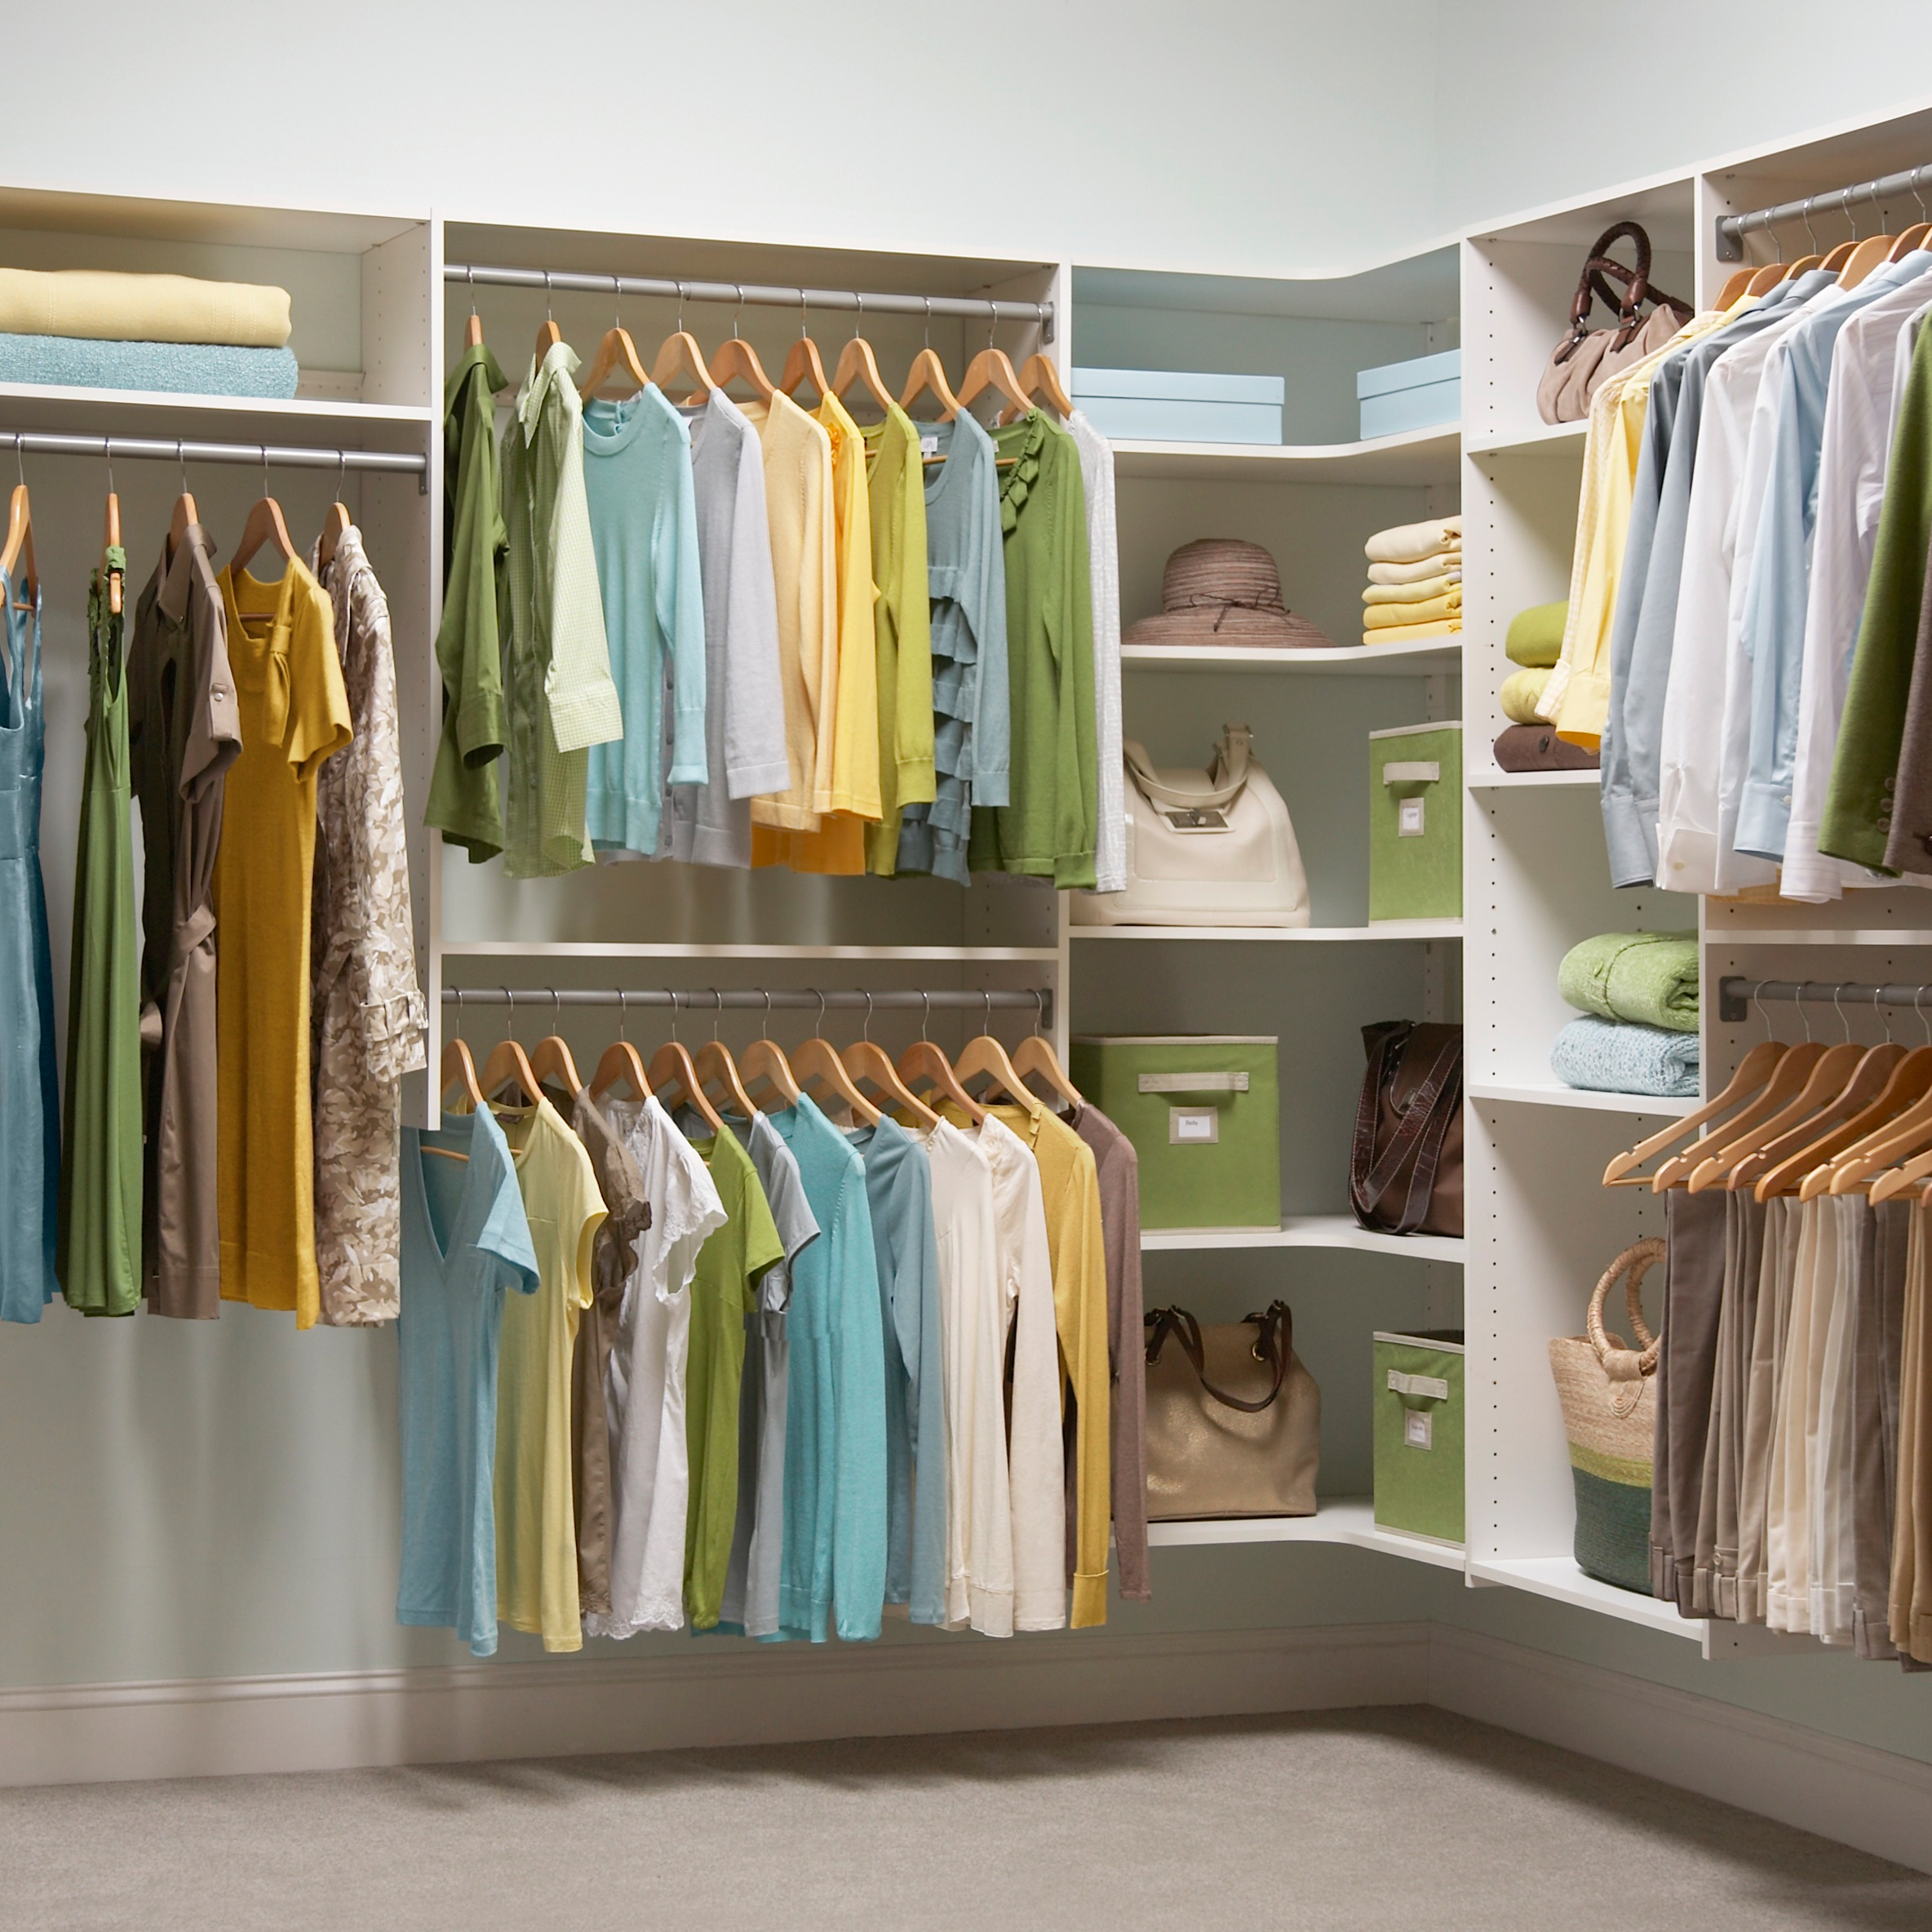 Closet Organization Made Simple By Martha Stewart Living At The Home Depot System